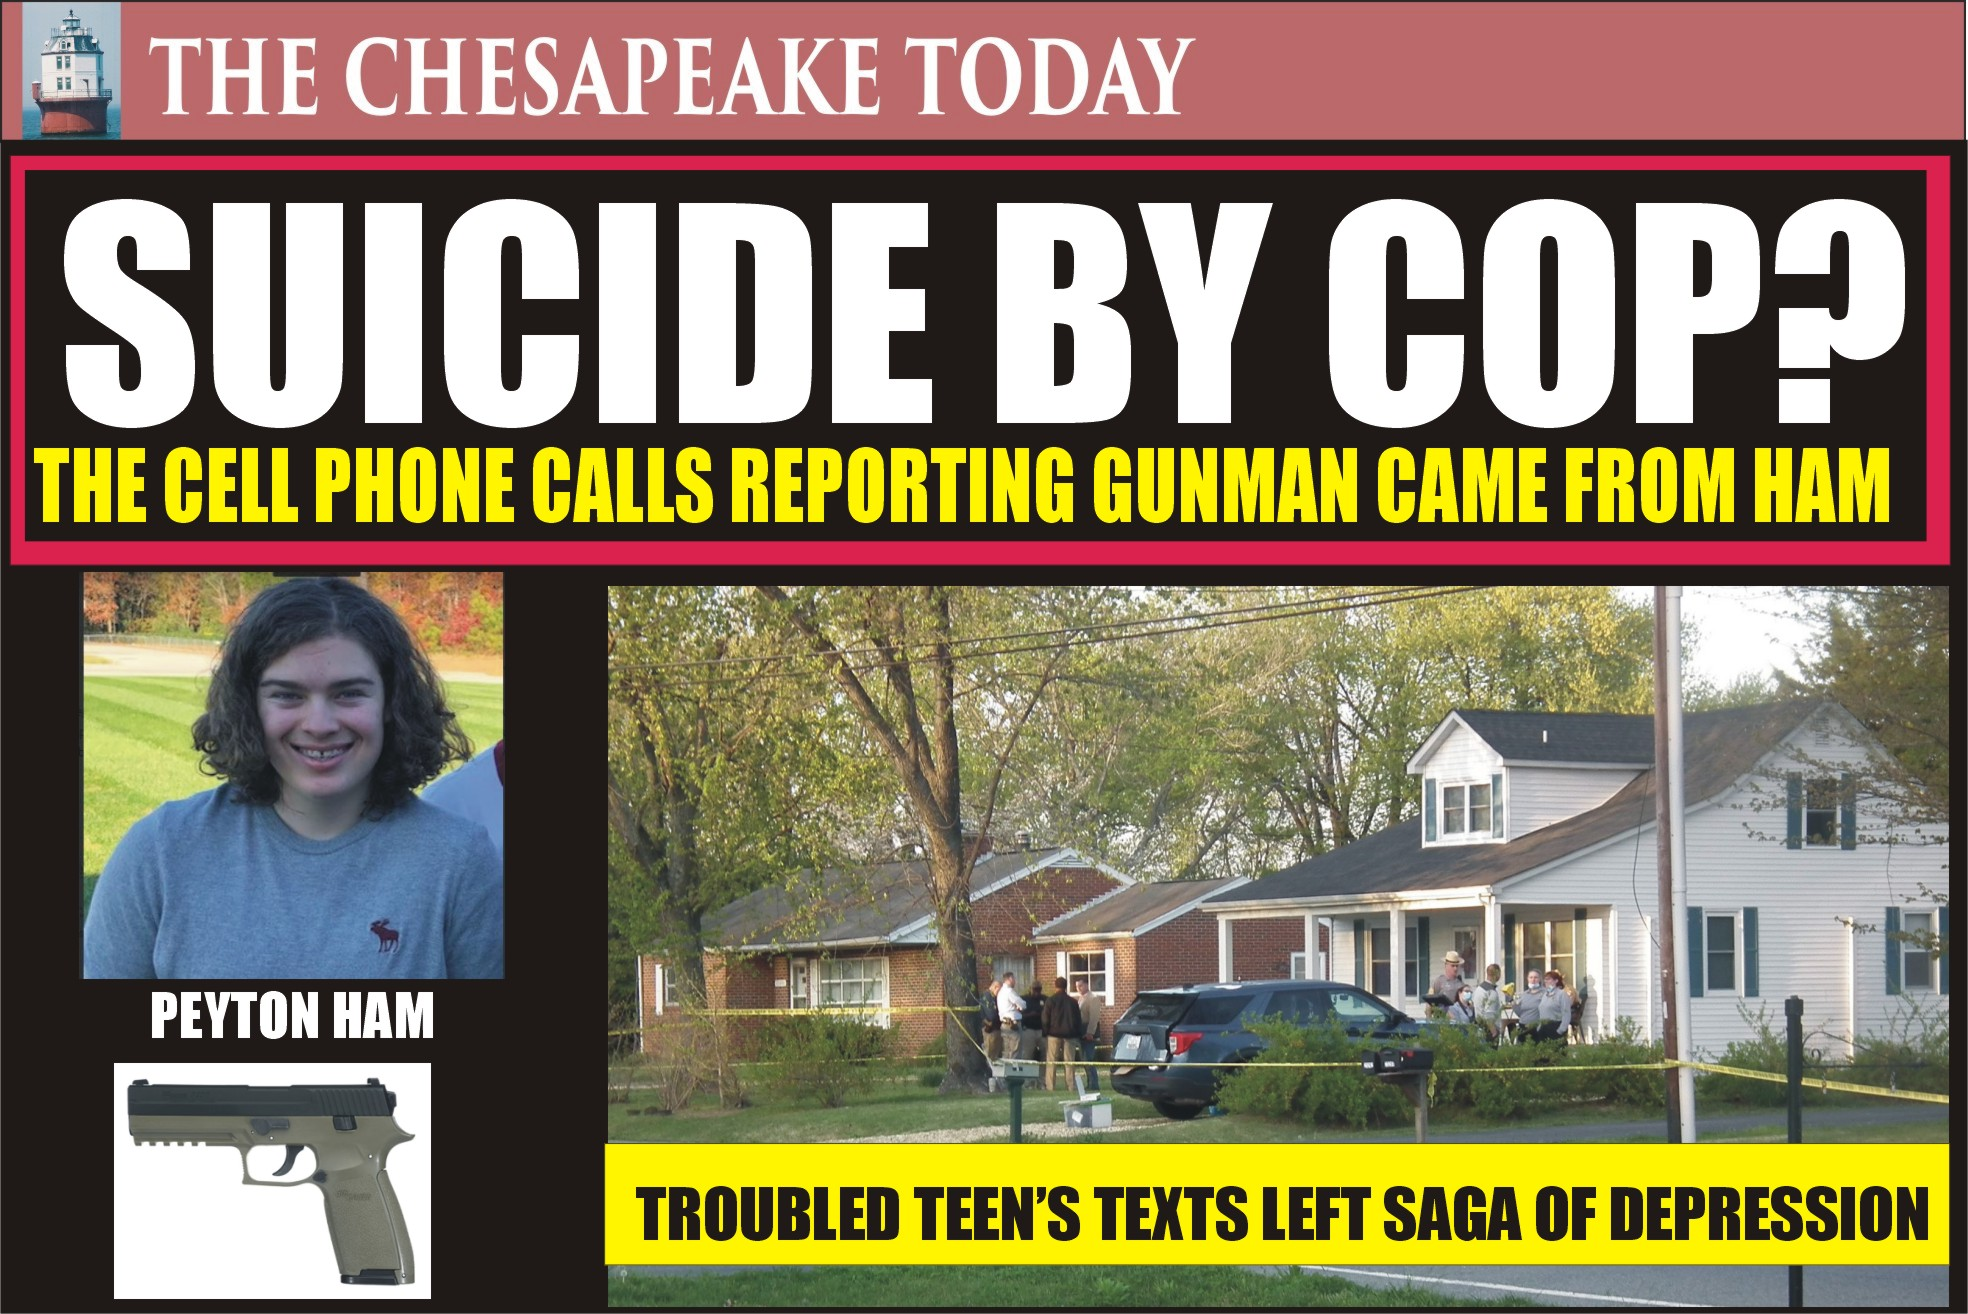 SUICIDE BY COP: CELL PHONE REVEALS PEYTON HAM PLACED CALLS TO 911 THAT LED TROOPER TO HIS TRAP